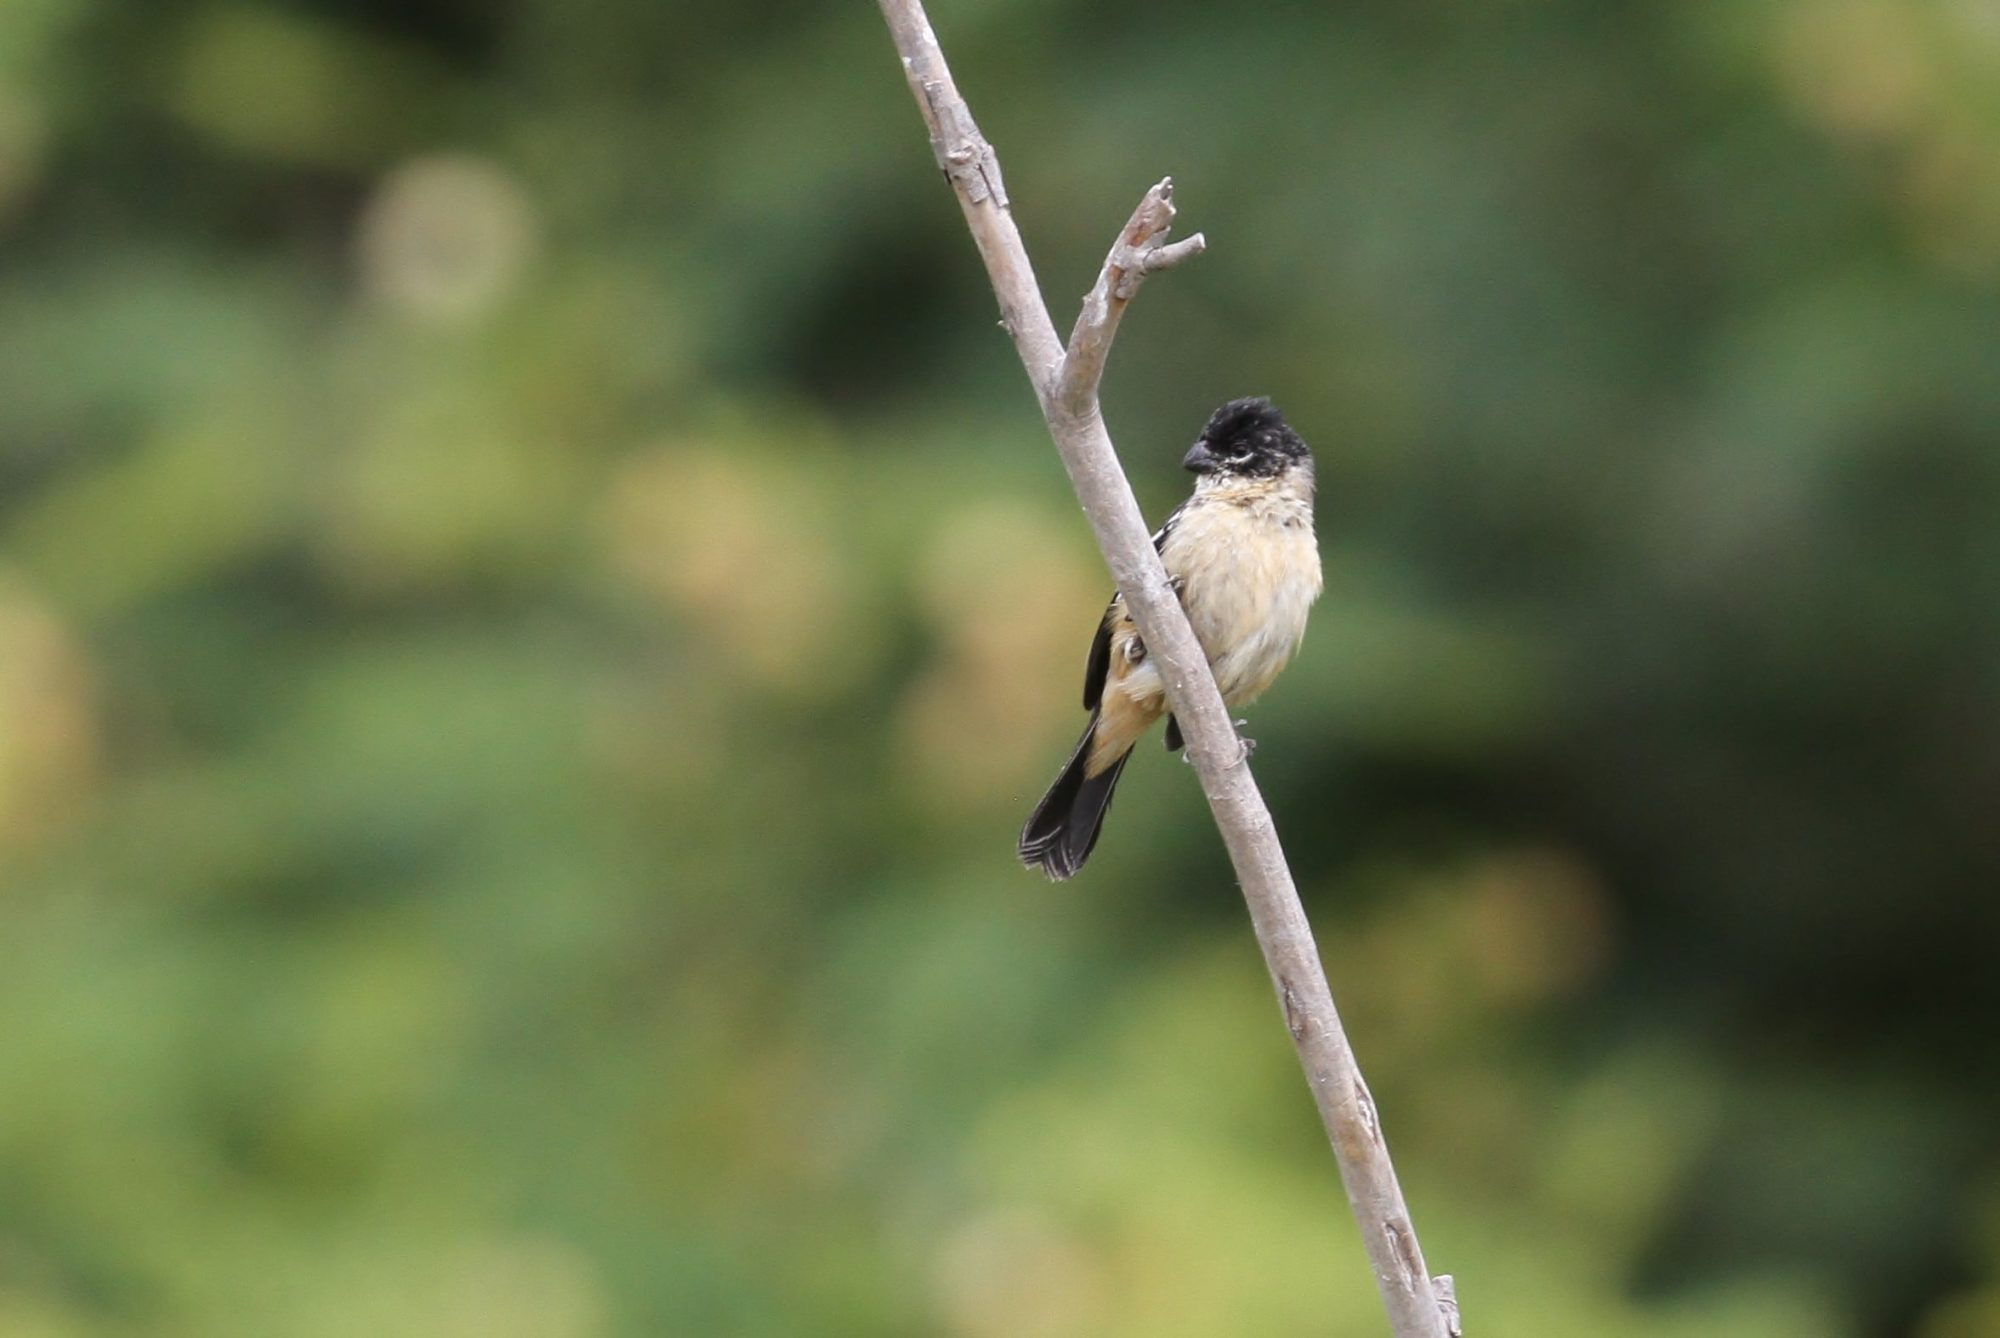 Male Morelet's Seedeater, photo by Alex Lamoreaux